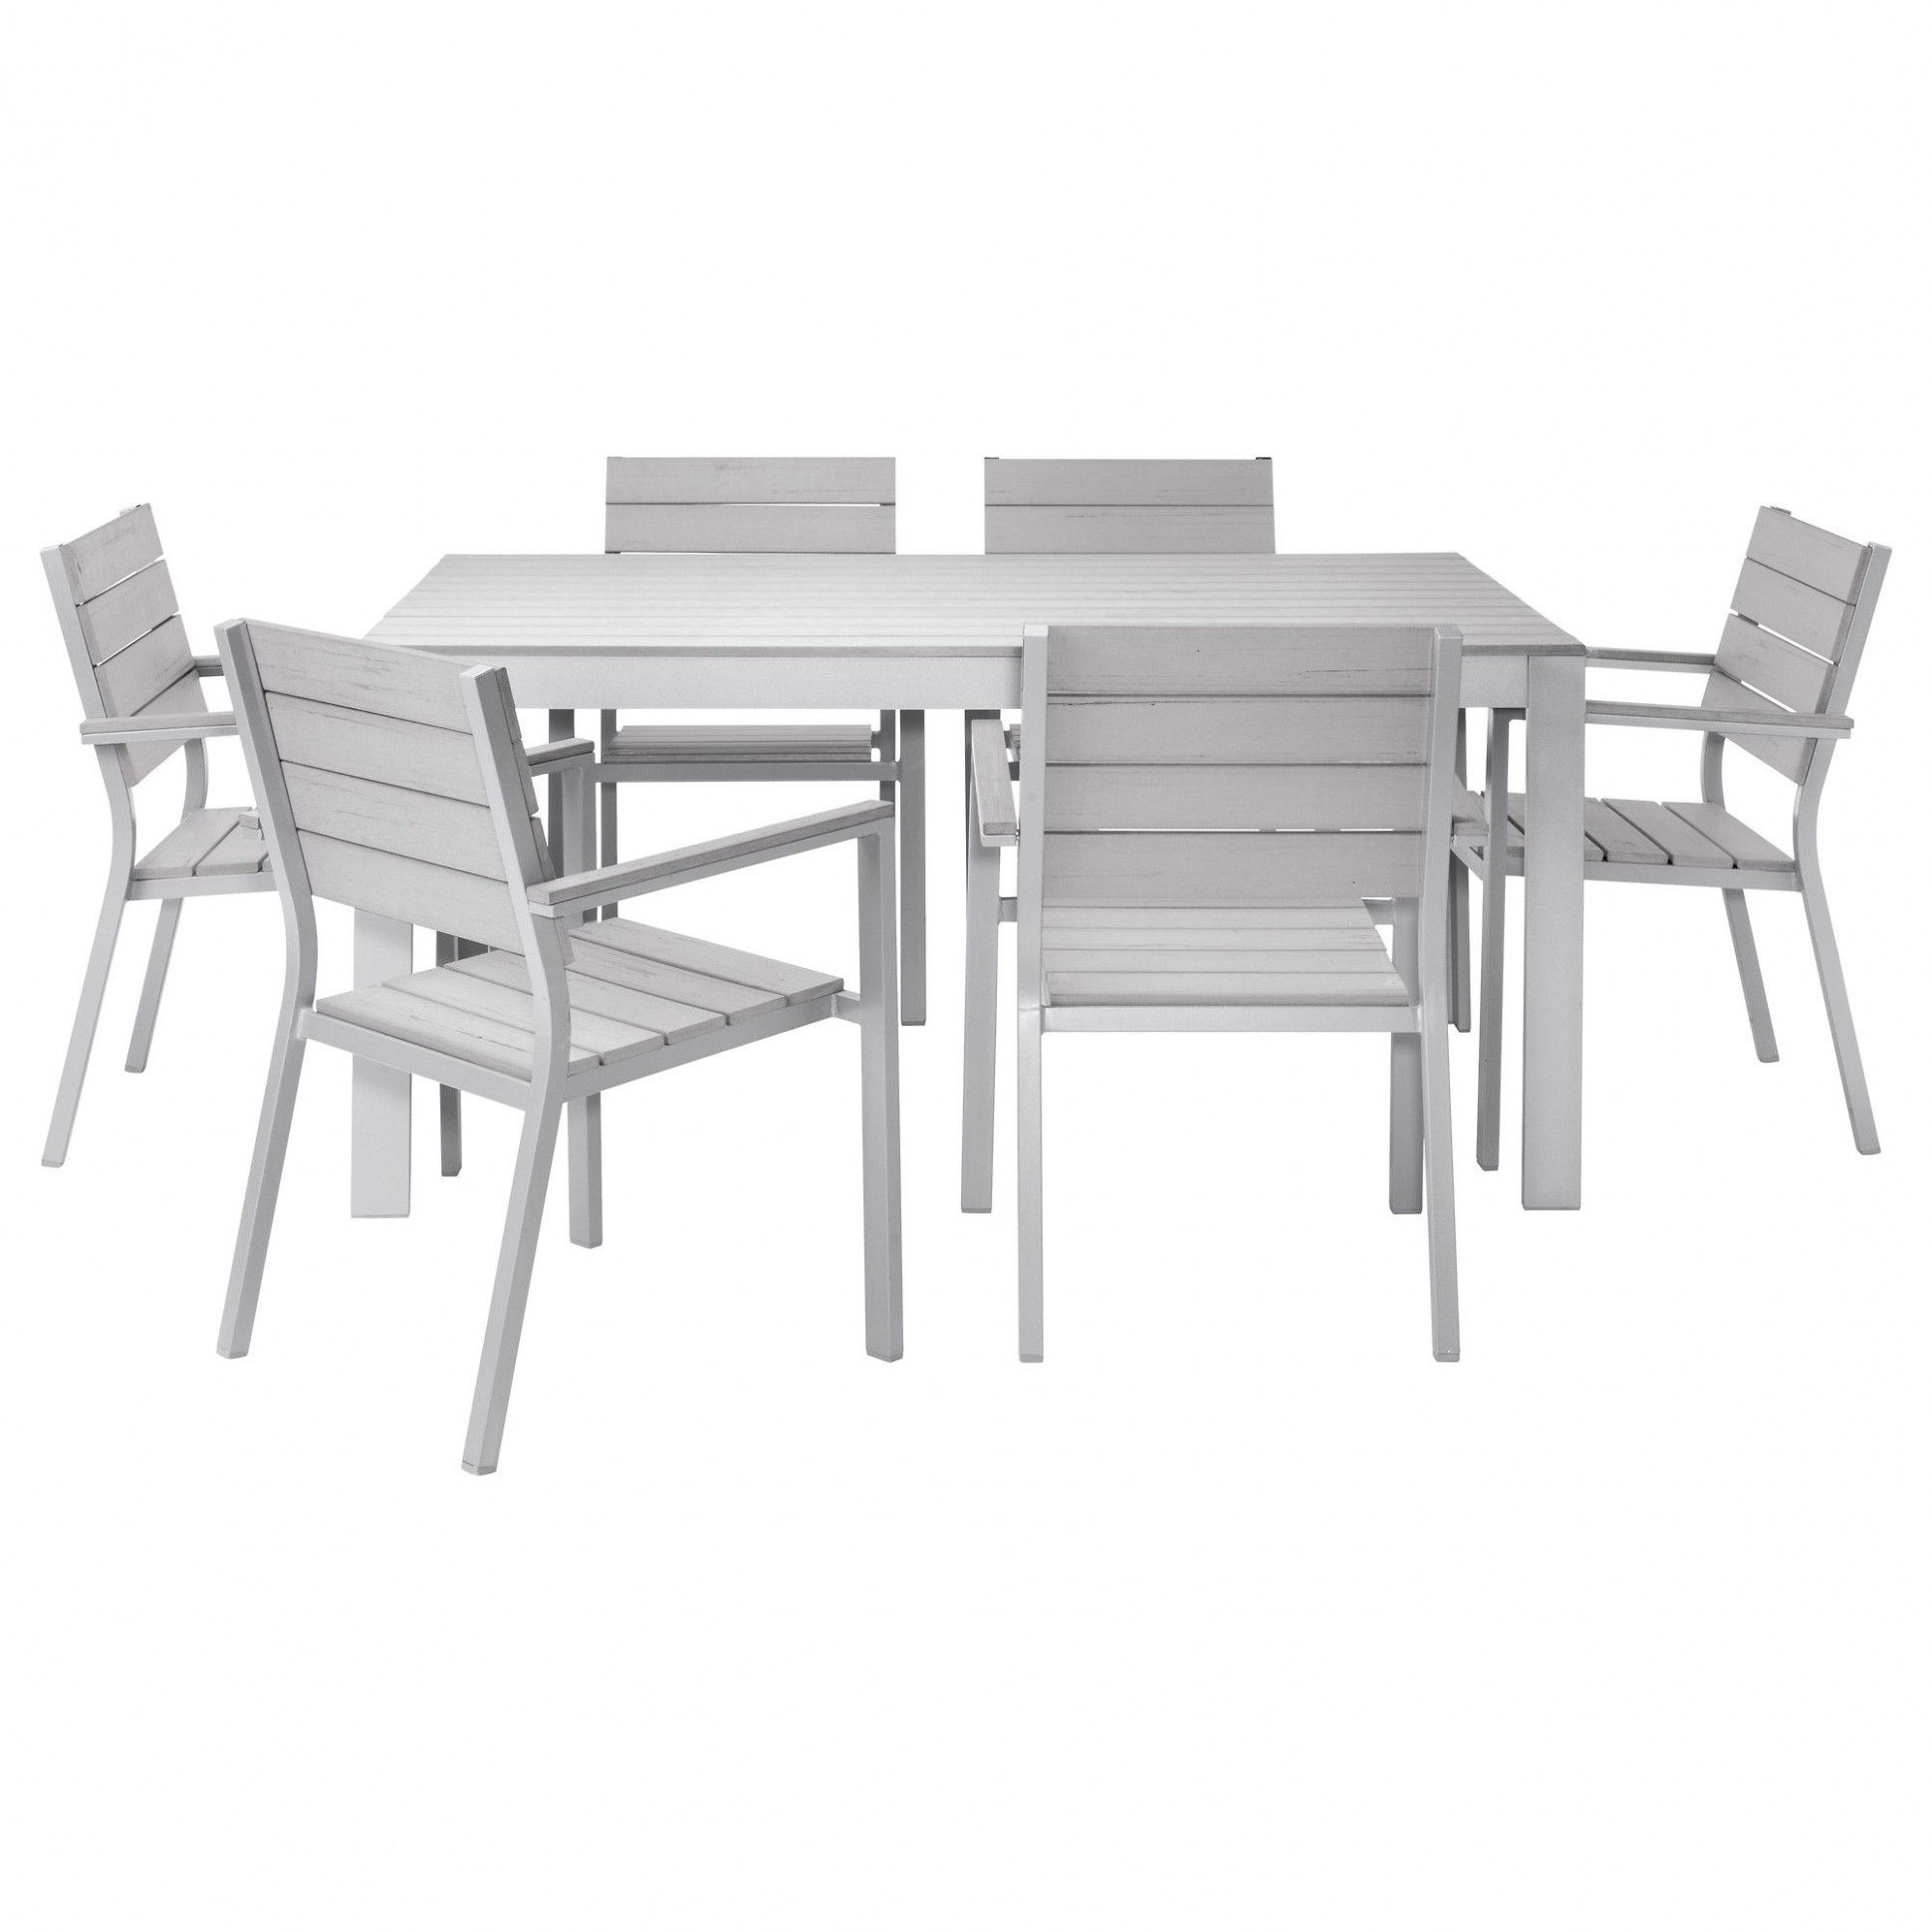 Ikea Garden Table Cover in 6  Patio furnishings, Bistro chairs